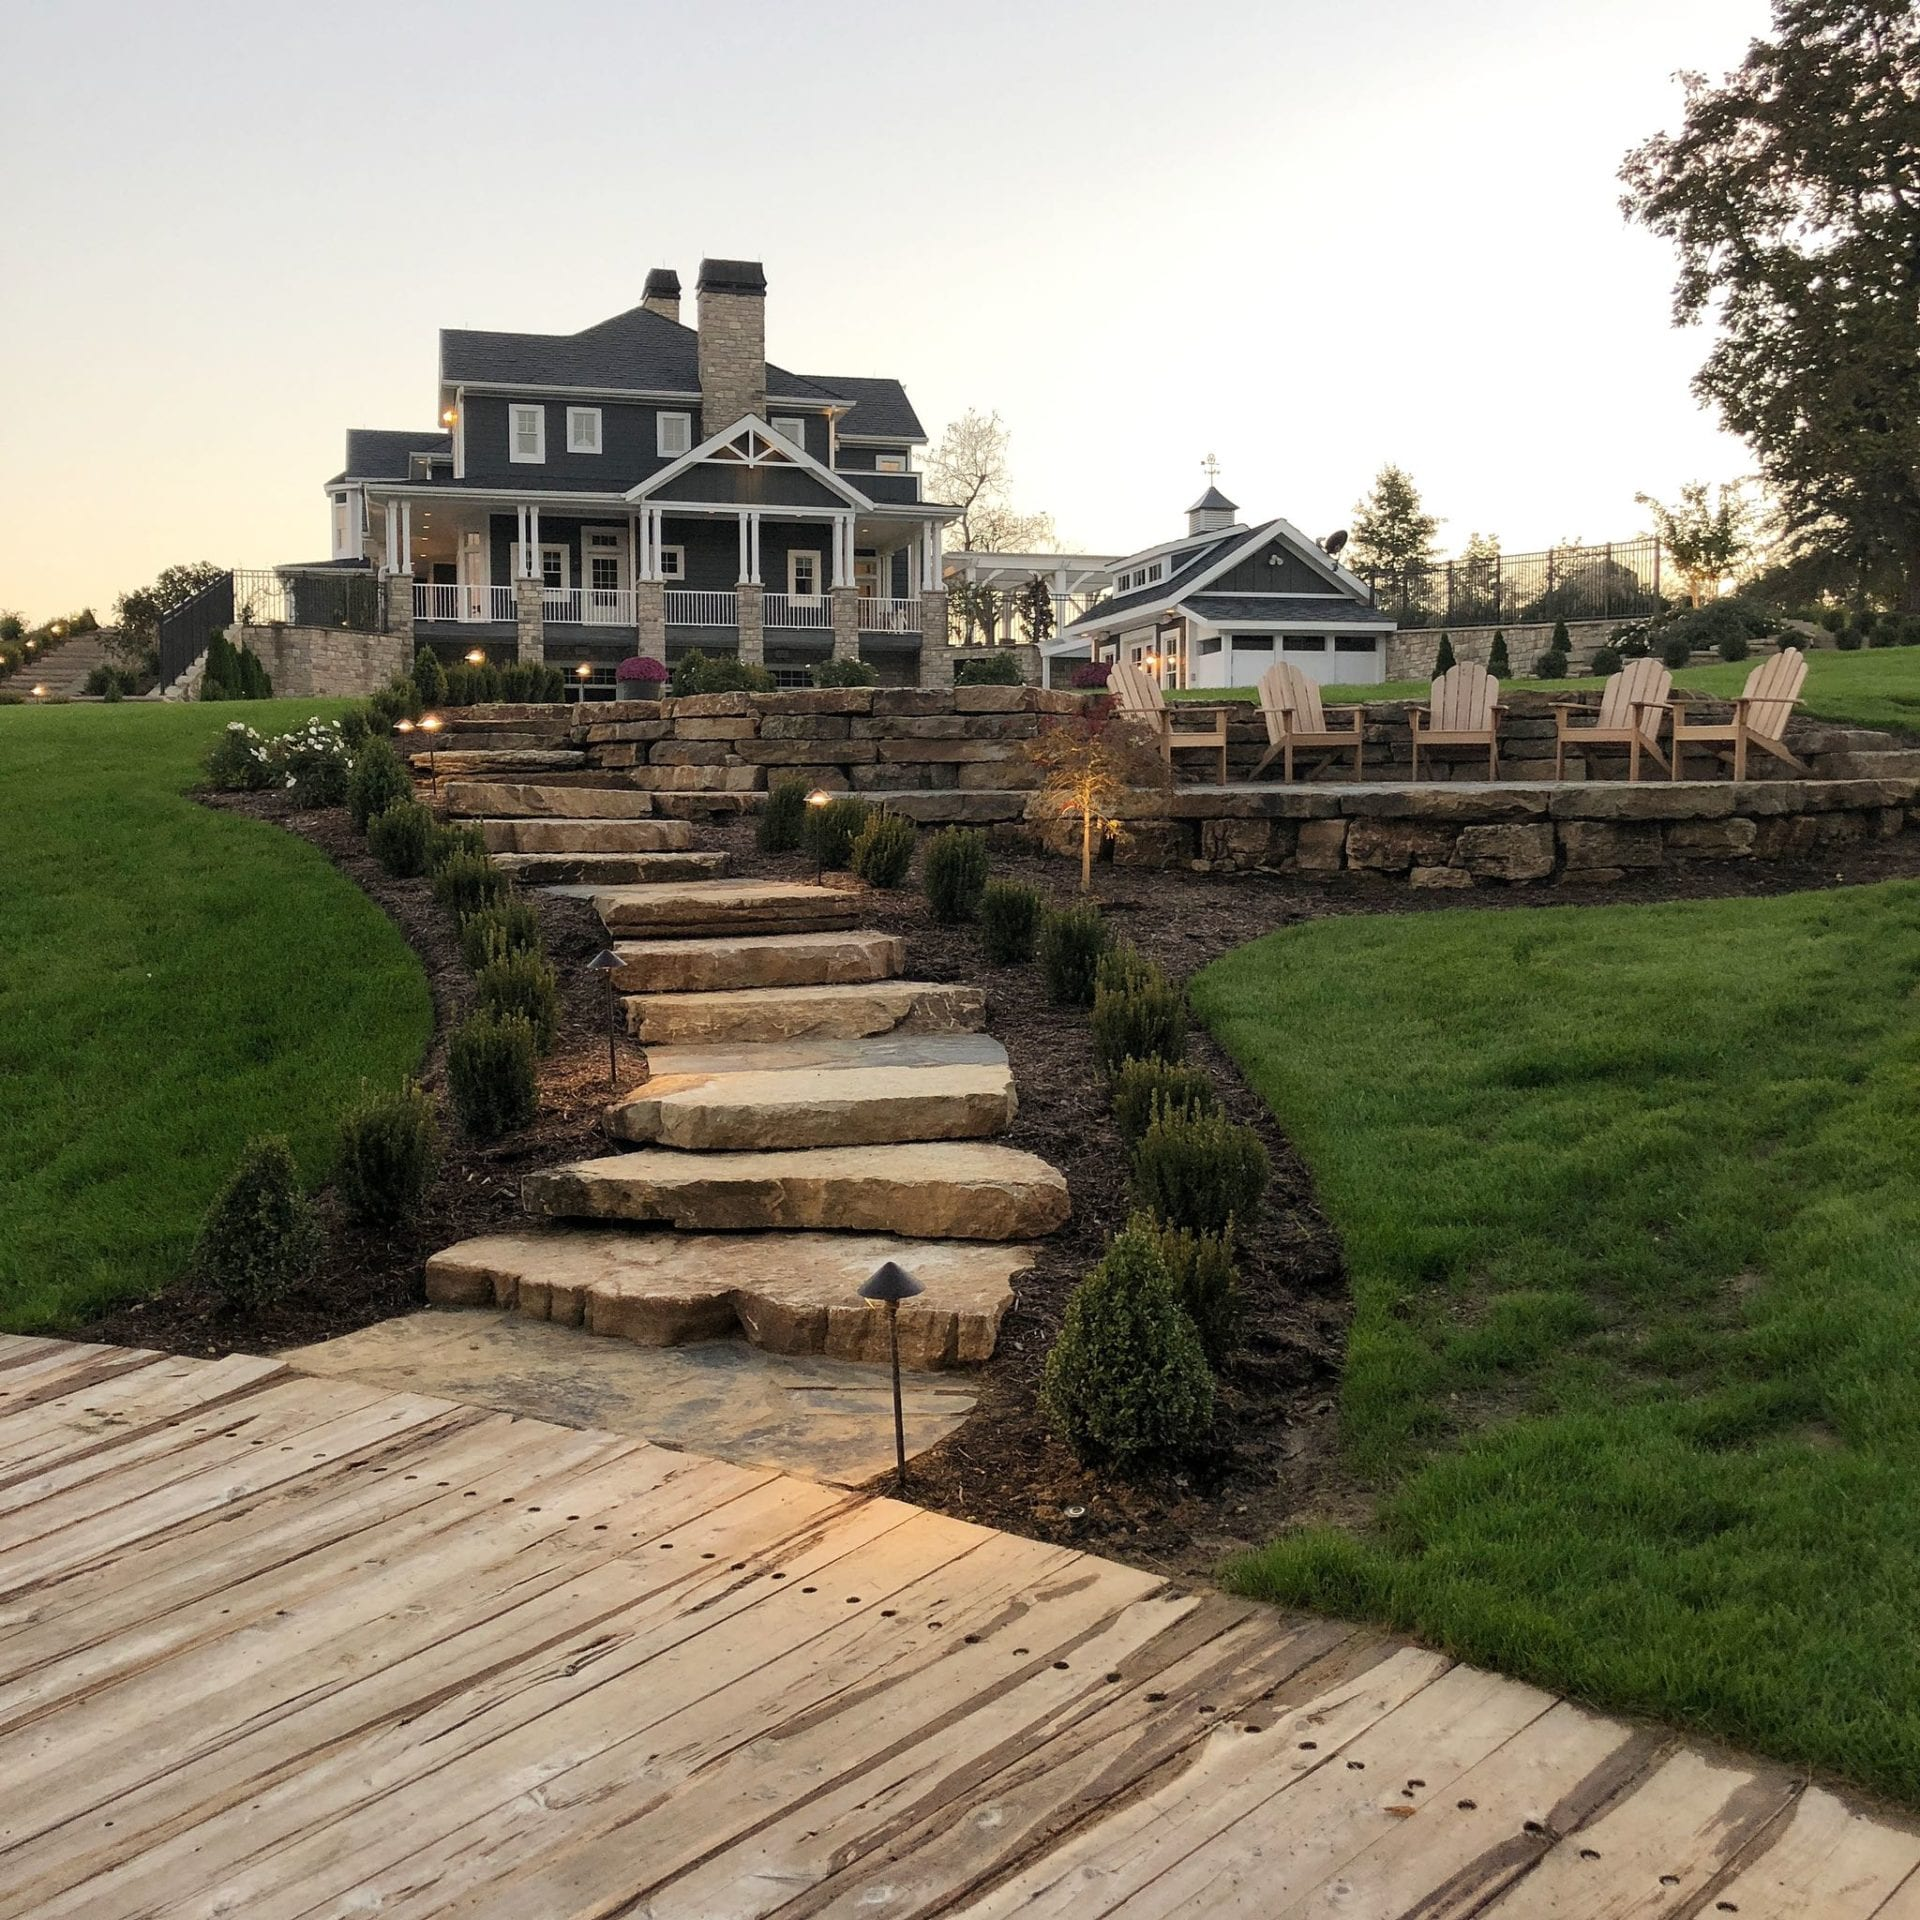 Natural stone steps and walls with sitting area